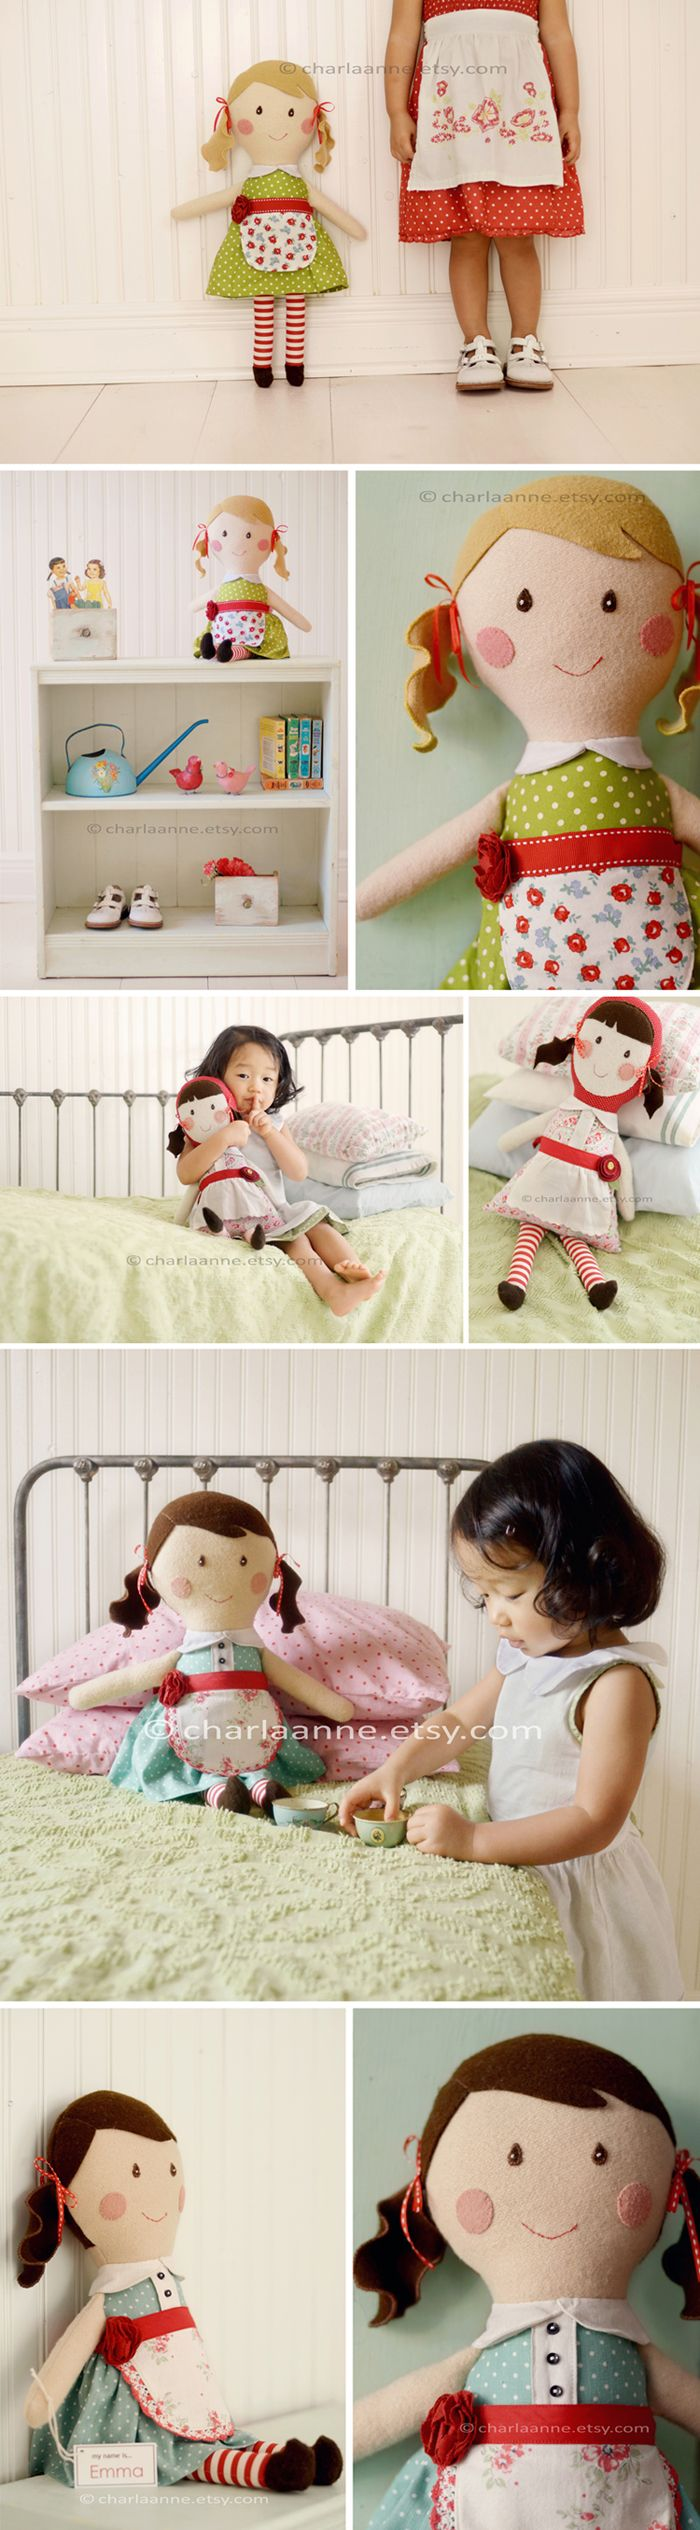 handmade dolls- I love how she did the hair and cheeks!